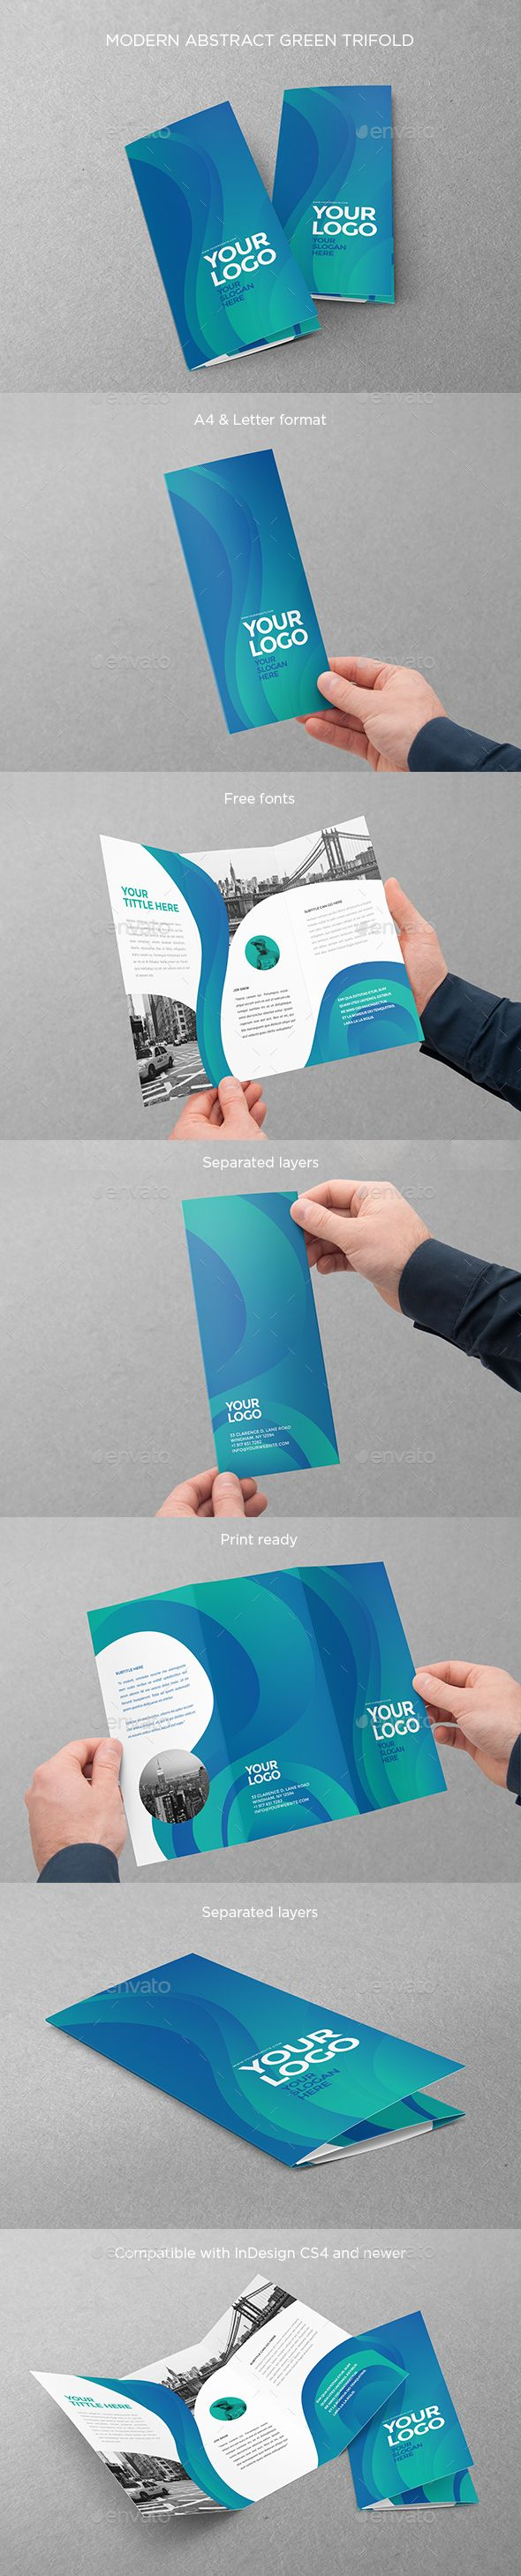 Modern Abstract Green Trifold  Print Templates Brochures And